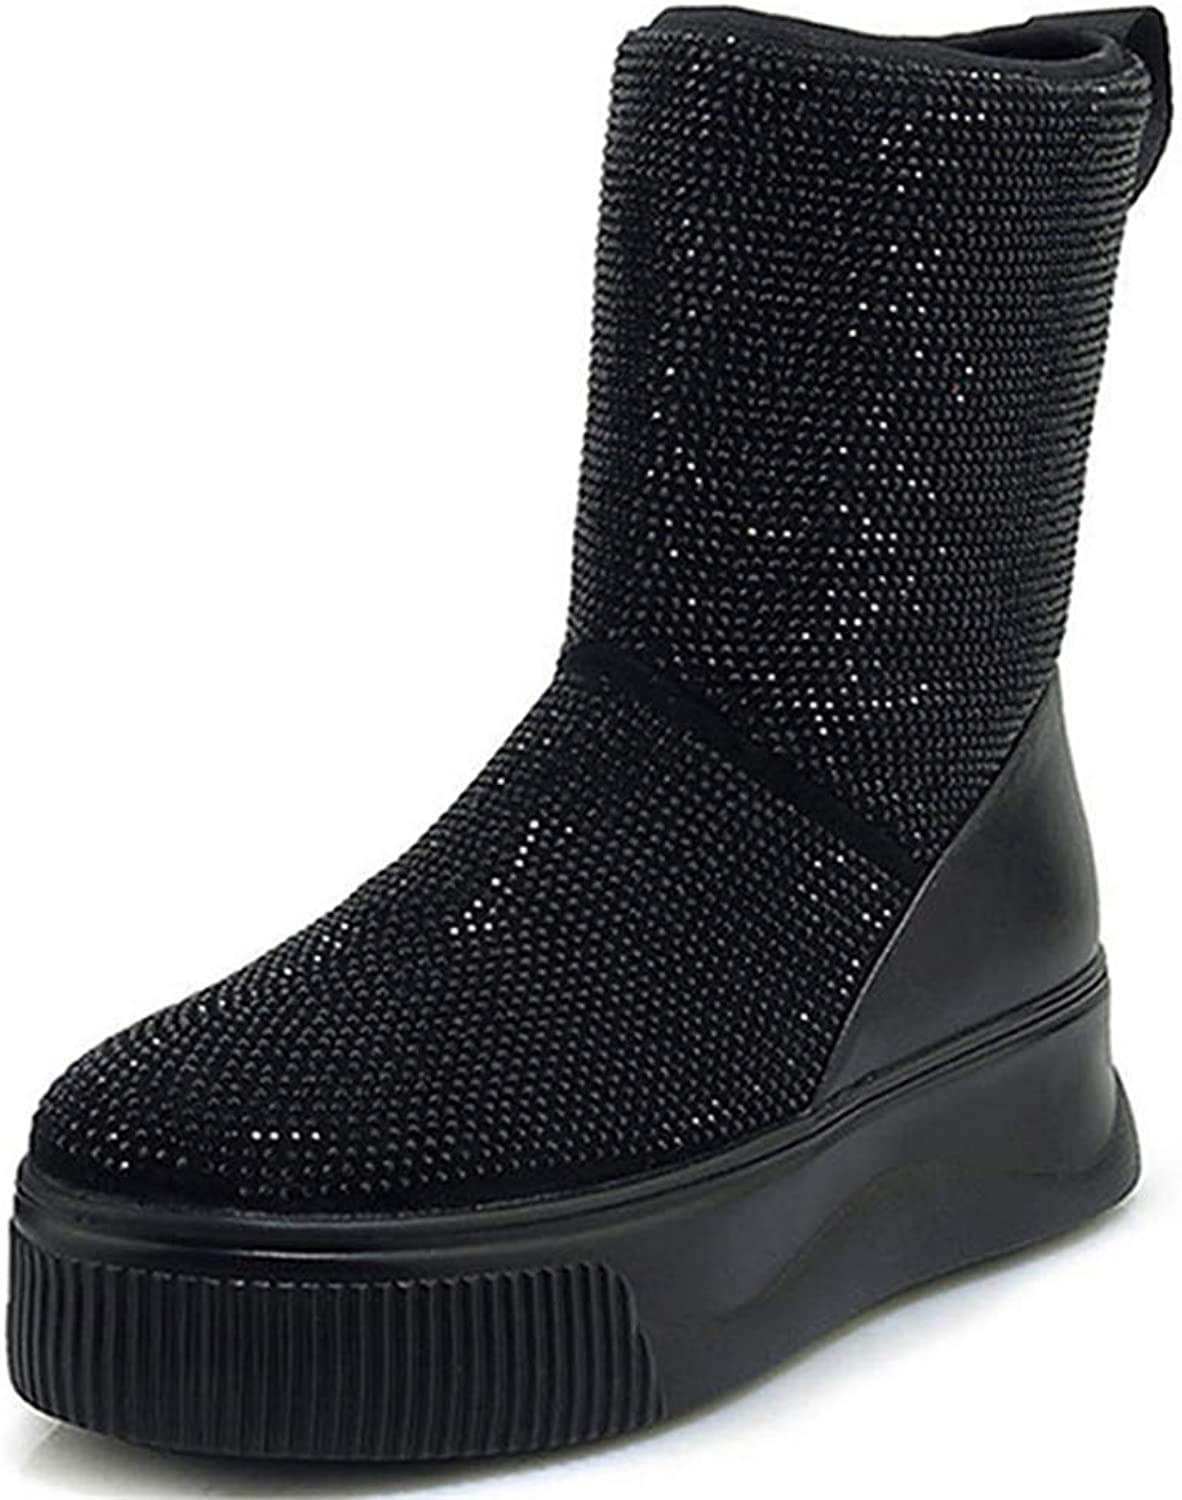 Genuine Leather Crystal Snow Boots Womens Winter Slip On Flat Warm Thick Fur Lined Ankle Booties